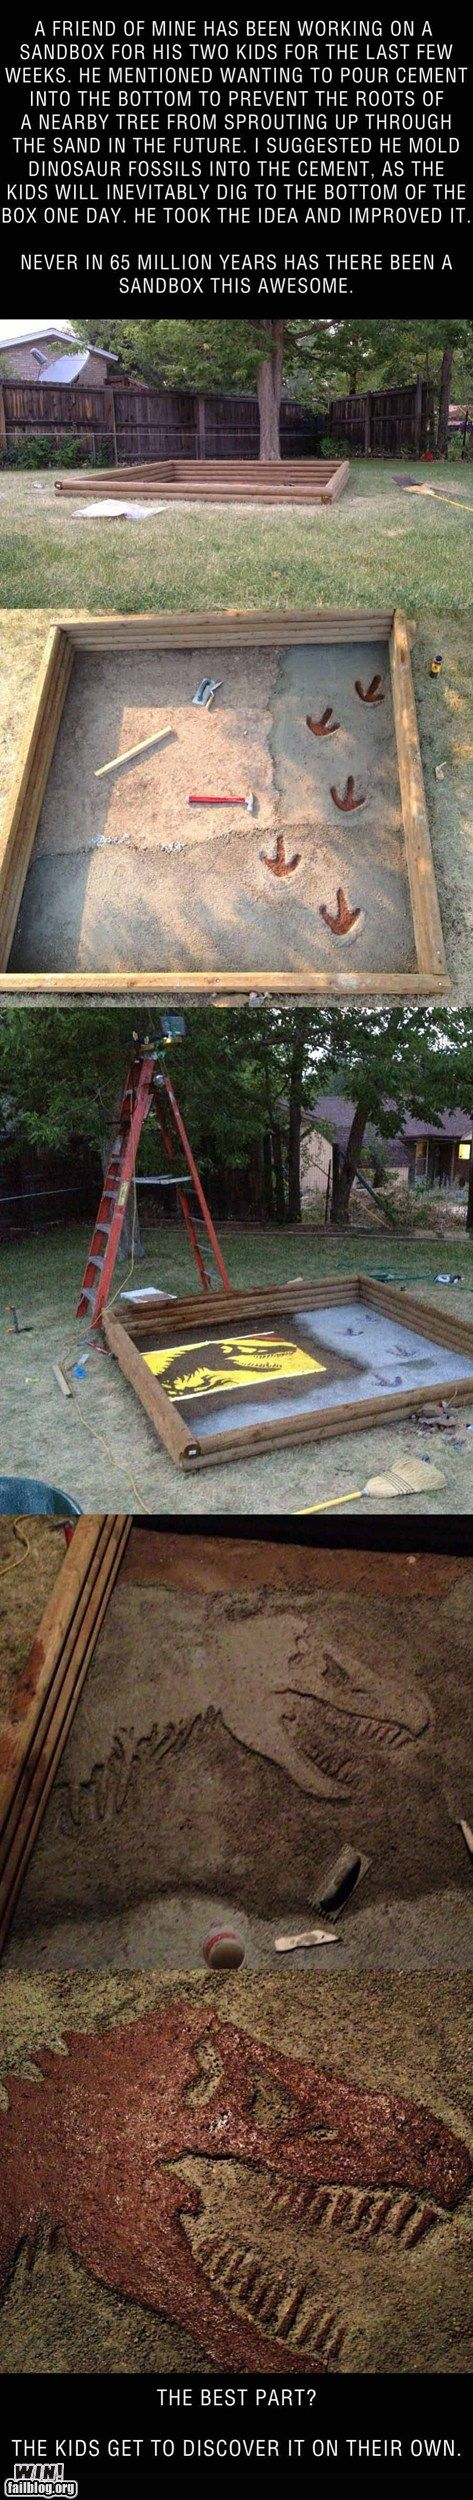 Greatest sandbox ever! We're sooo doing this when we have kids!